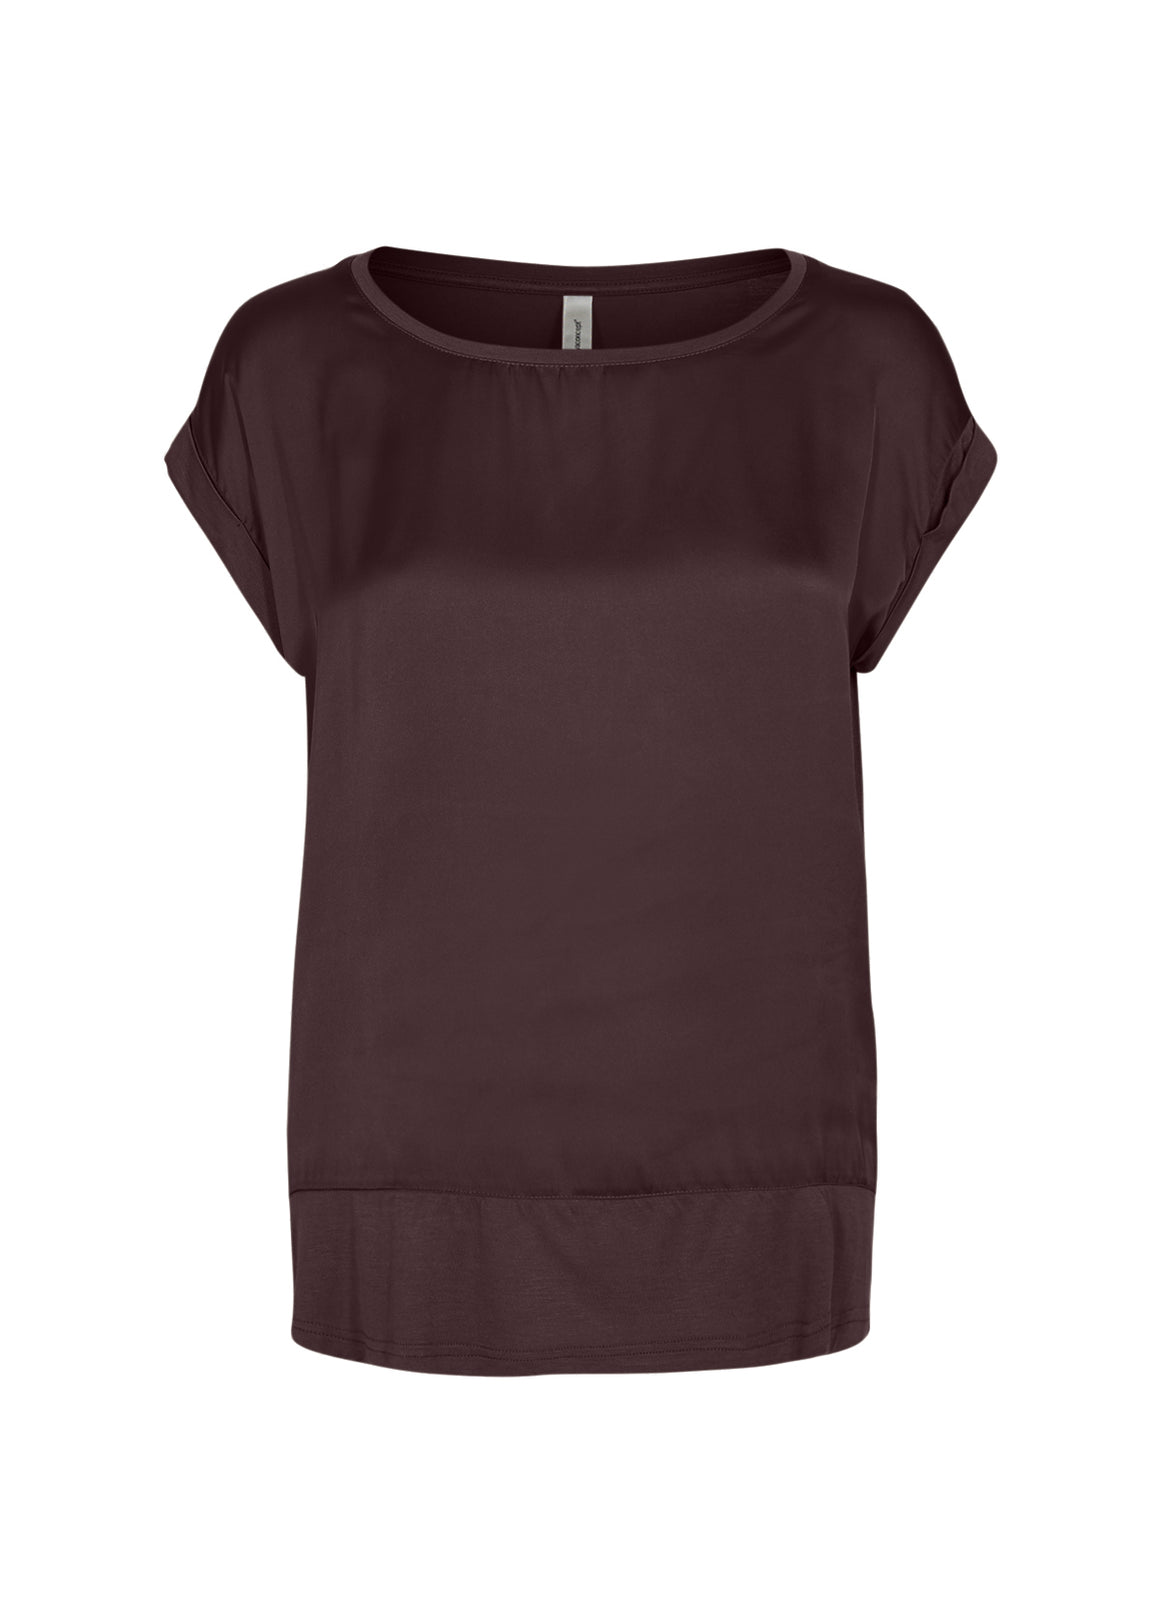 Thilda Satin SS Top for Women in Burgundy